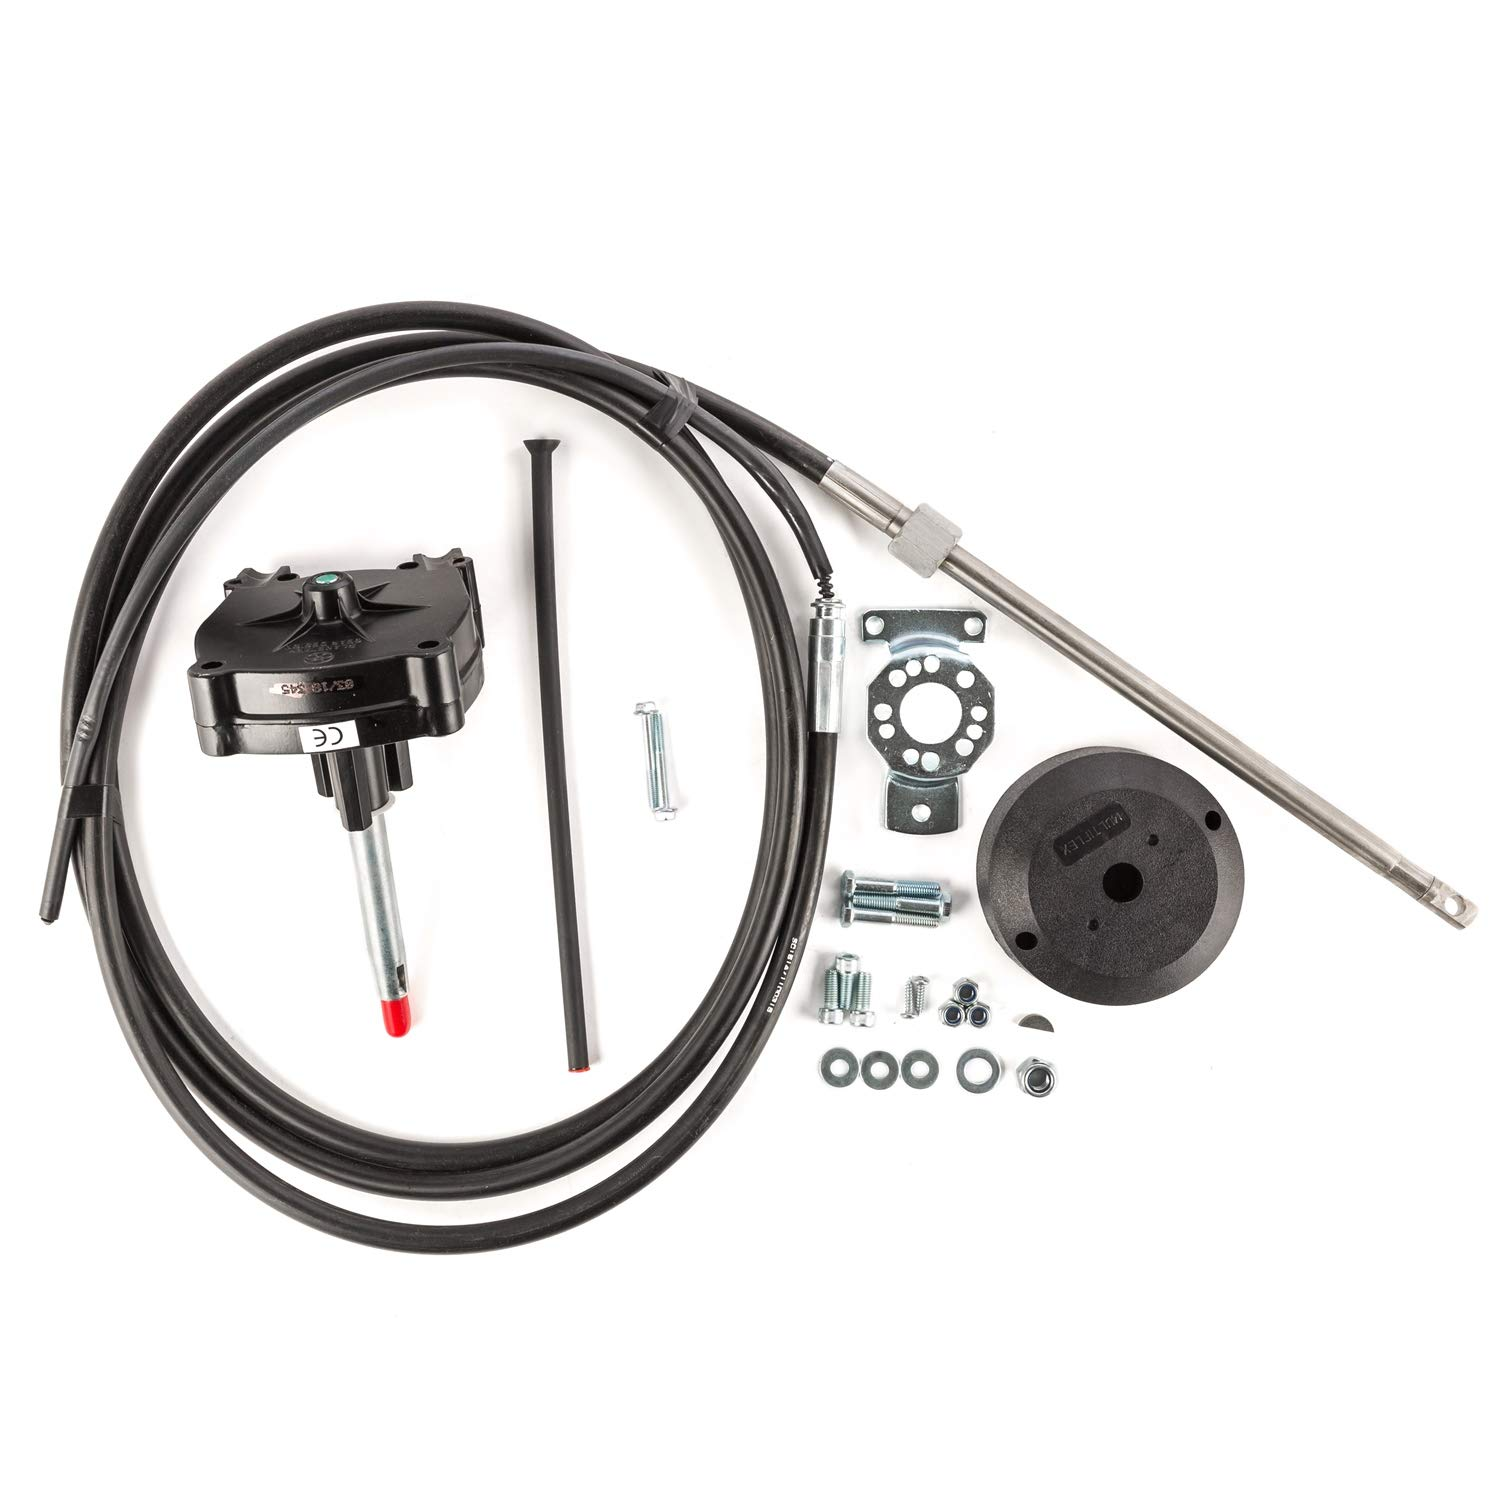 Kimpex Easy Connect Packaged Steering System by Kimpex